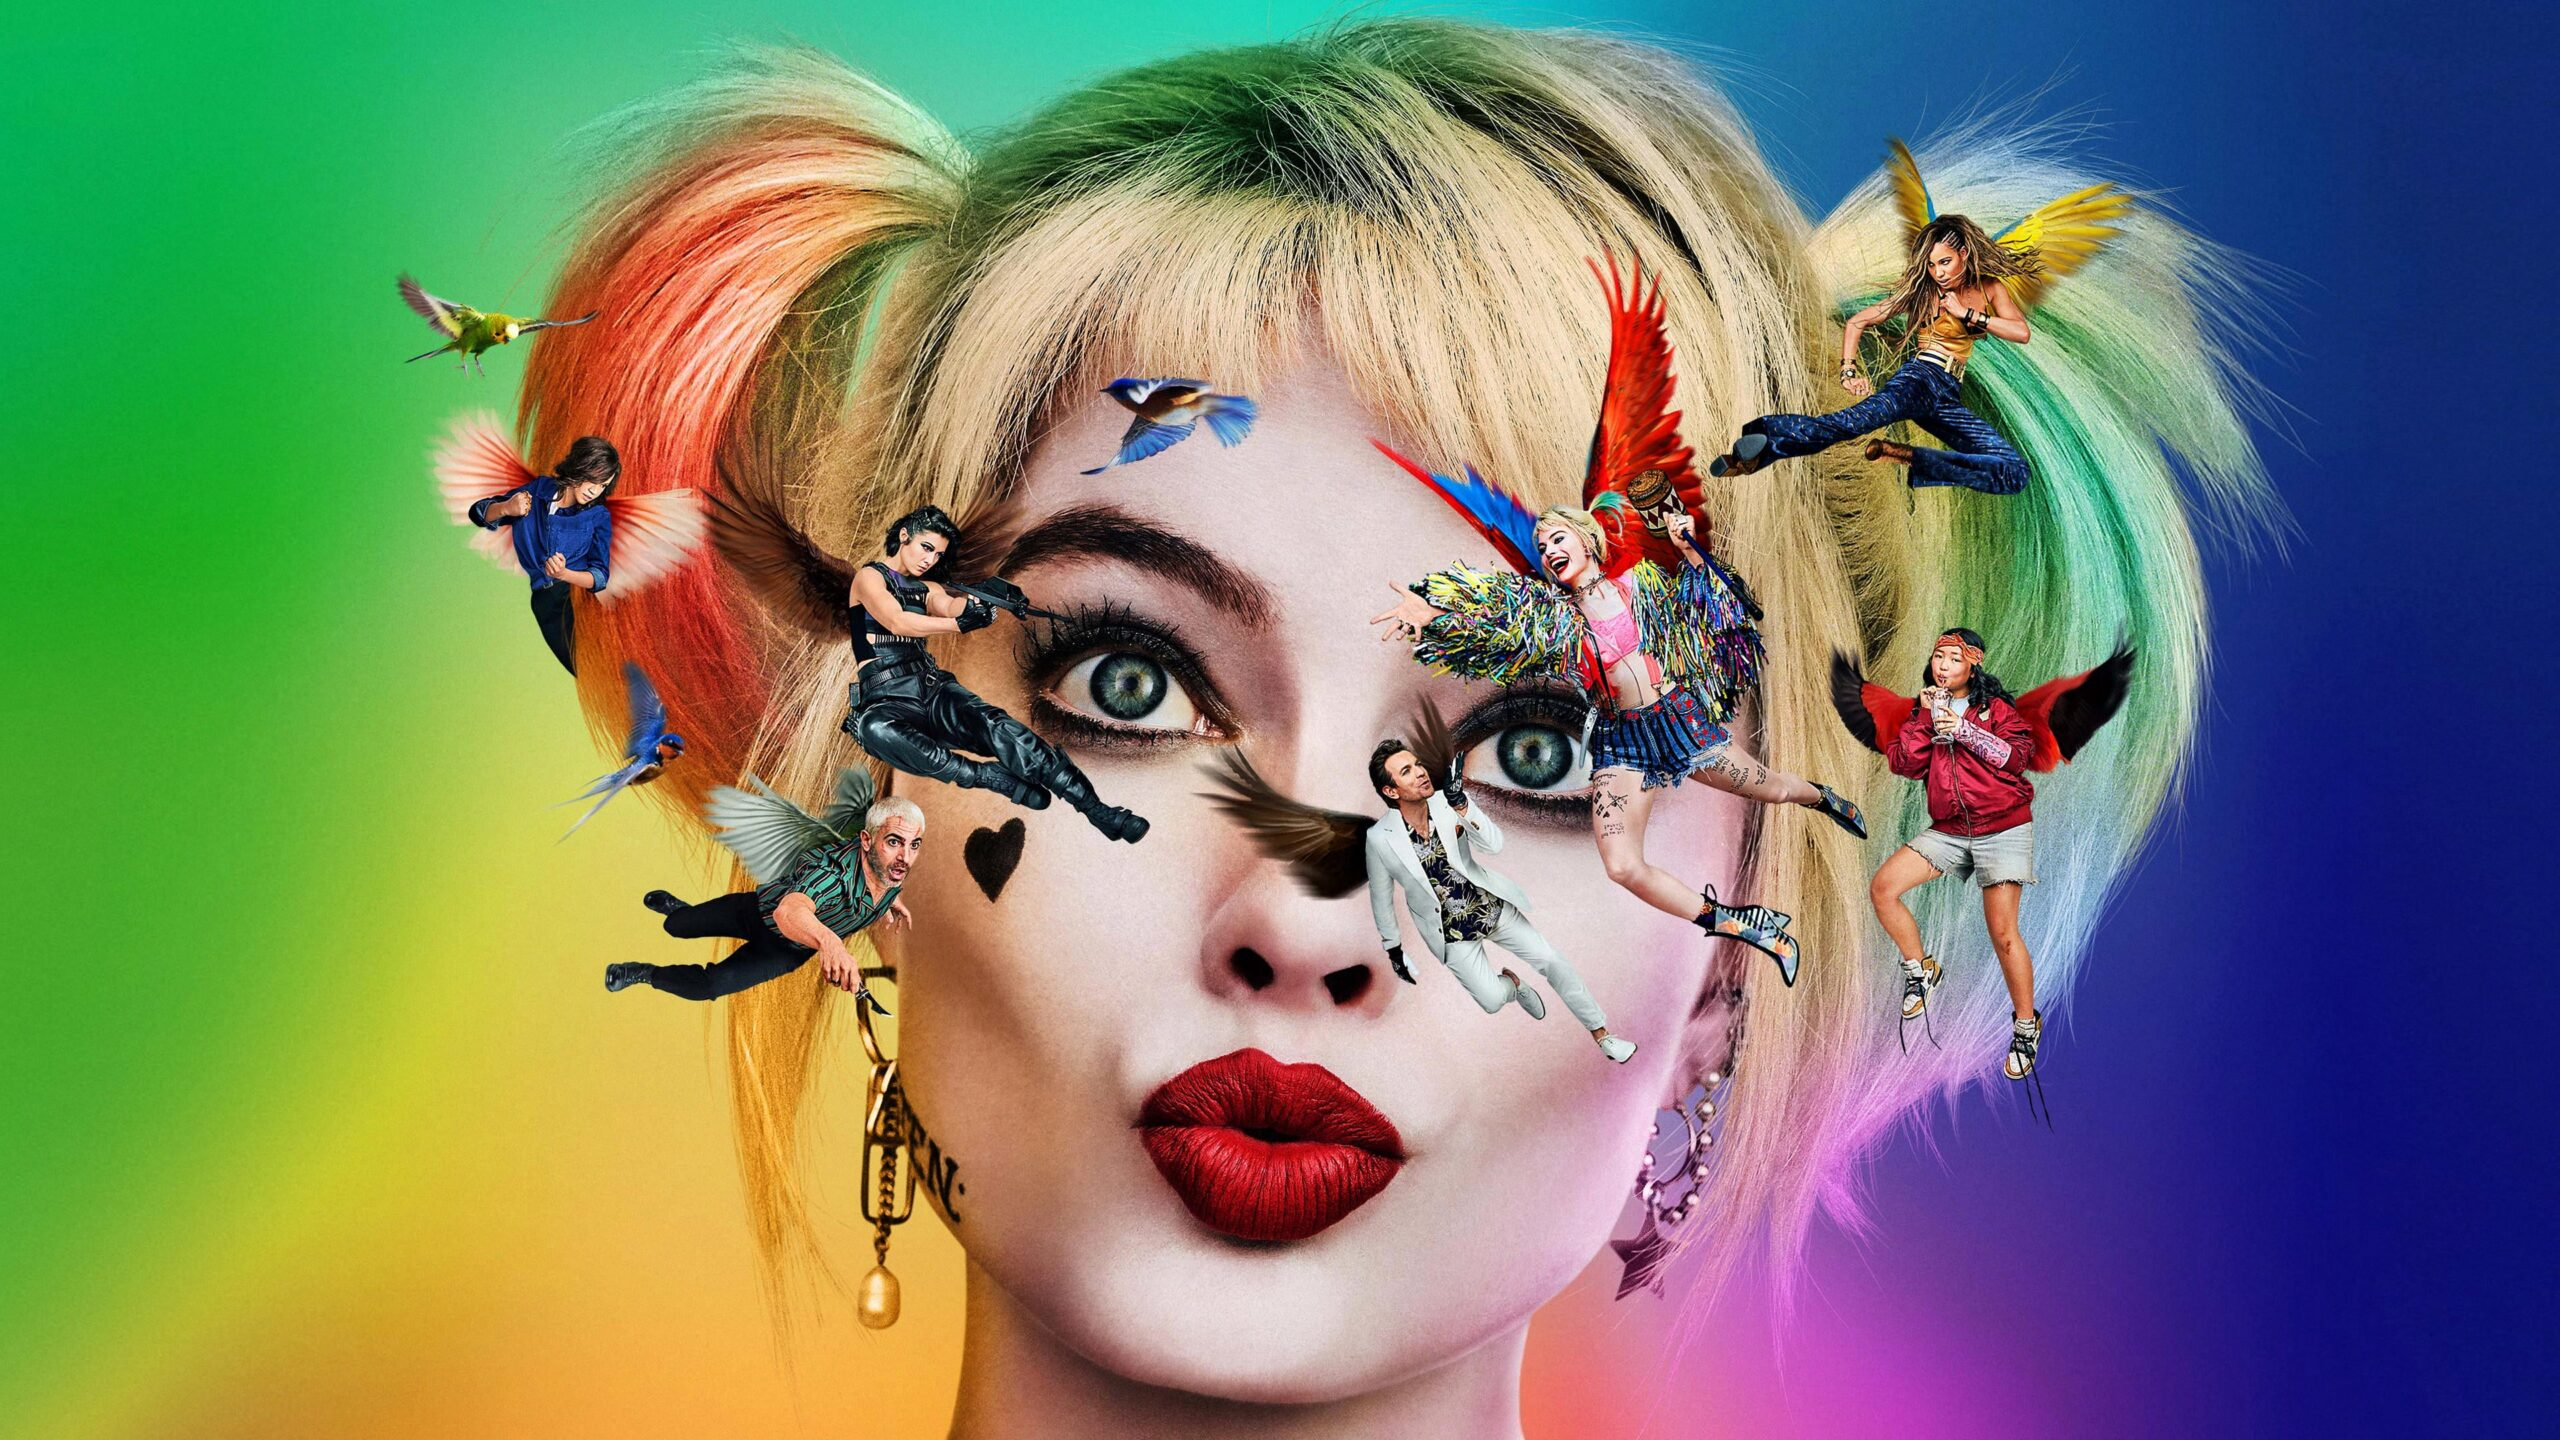 Birds of Prey (and the Fantabulous Emancipation of One Harley Quinn) Movie Streaming Online Watch on Amazon, Google Play, Hungama, Tata Sky , Youtube, iTunes